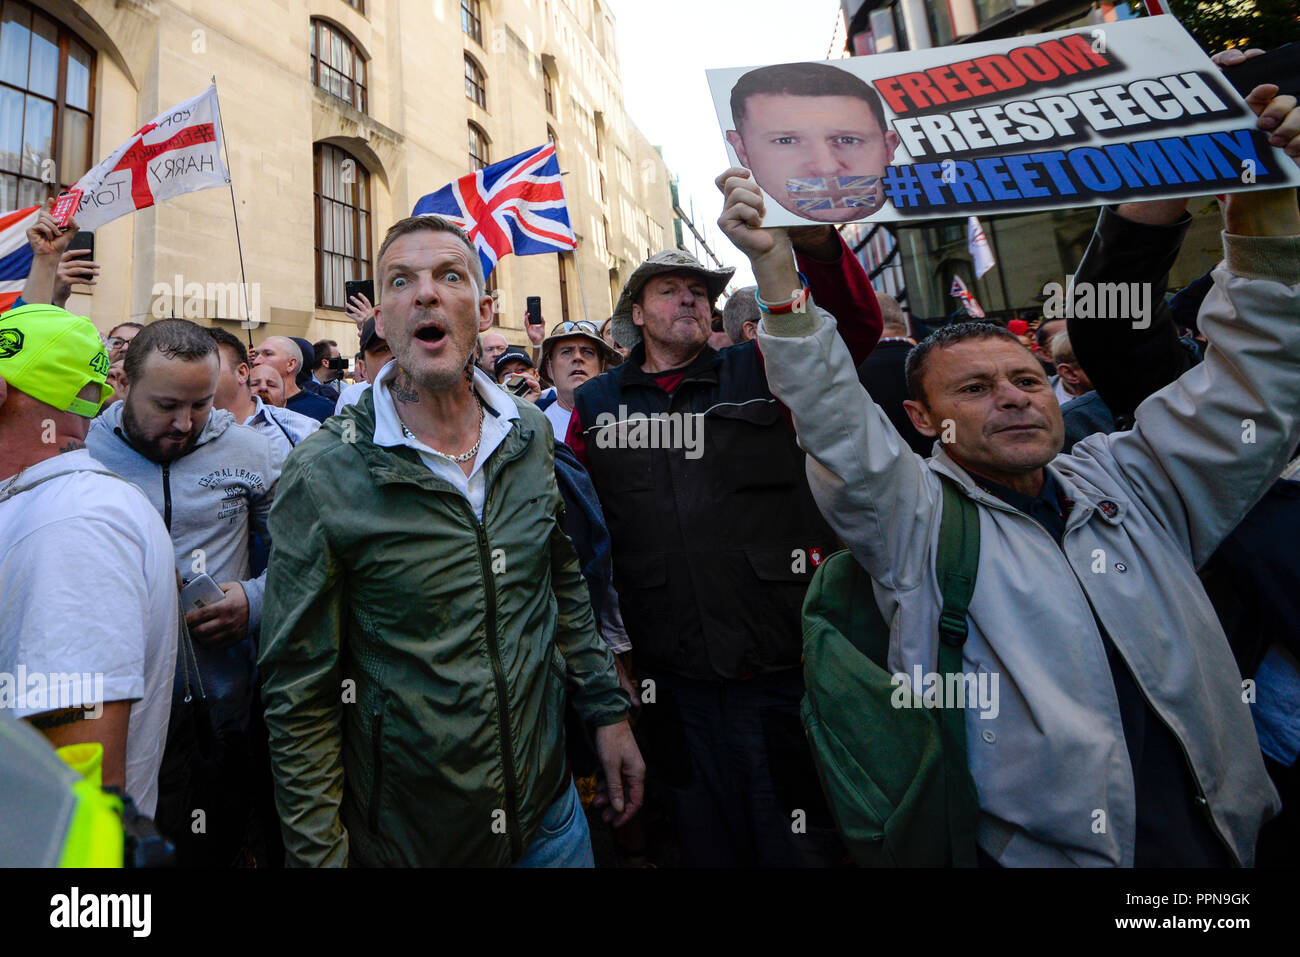 old-bailey-london-uk-27th-sept-2018-stephen-yaxley-lennon-also-known-as-tommy-robinson-appeared-in-the-central-criminal-court-old-bailey-accused-of-contempt-of-court-arising-from-his-arrest-when-filming-outside-the-court-building-in-leeds-the-trial-has-become-the-focus-of-his-supporters-and-anti-fascist-and-anti-racist-groups-who-demonstrated-outside-credit-avpics-alamy-live-news-PPN9GK.jpg